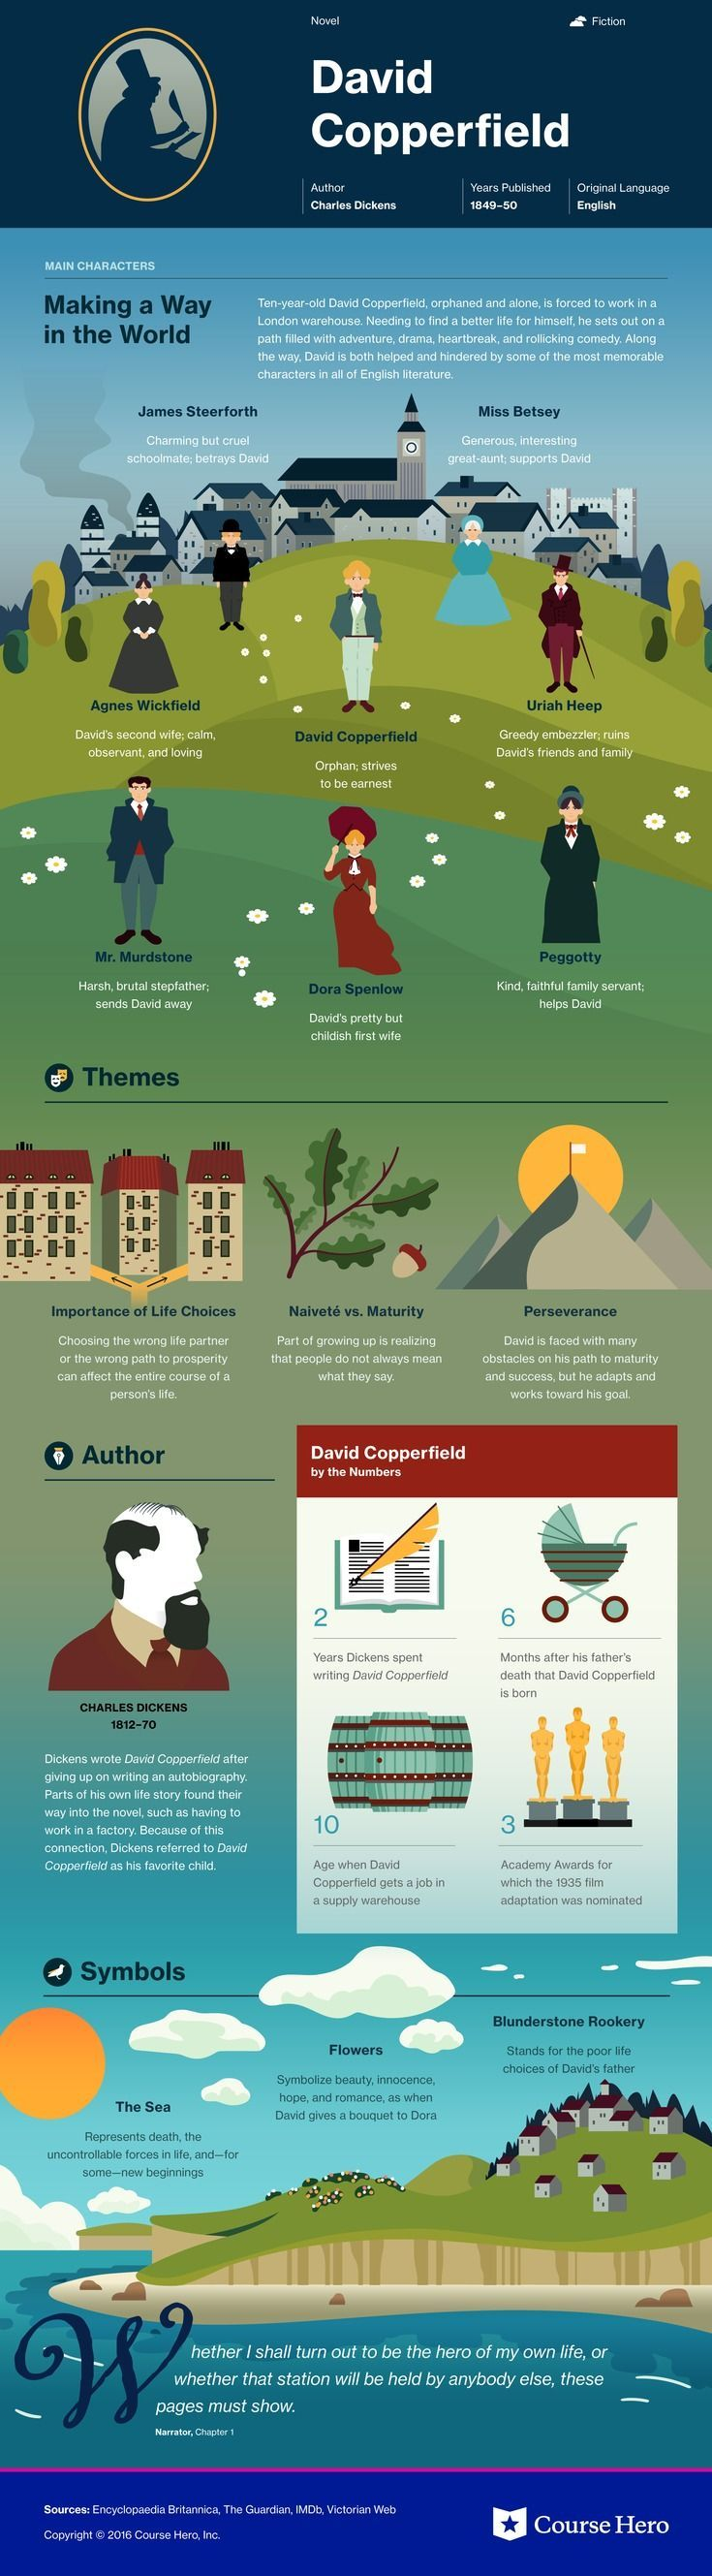 17 best images about literature infographics the learn about the different symbols such as blunderstone rookery in david copperfield and how they contribute to the plot of the book